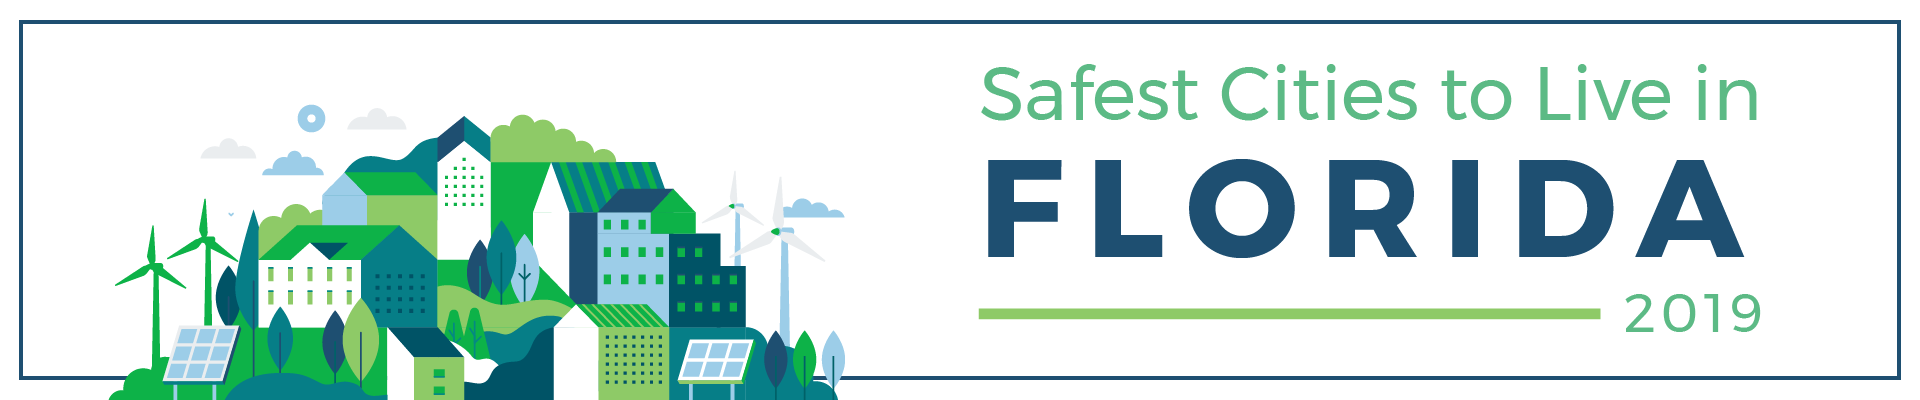 header - safest_cities_florida_2019